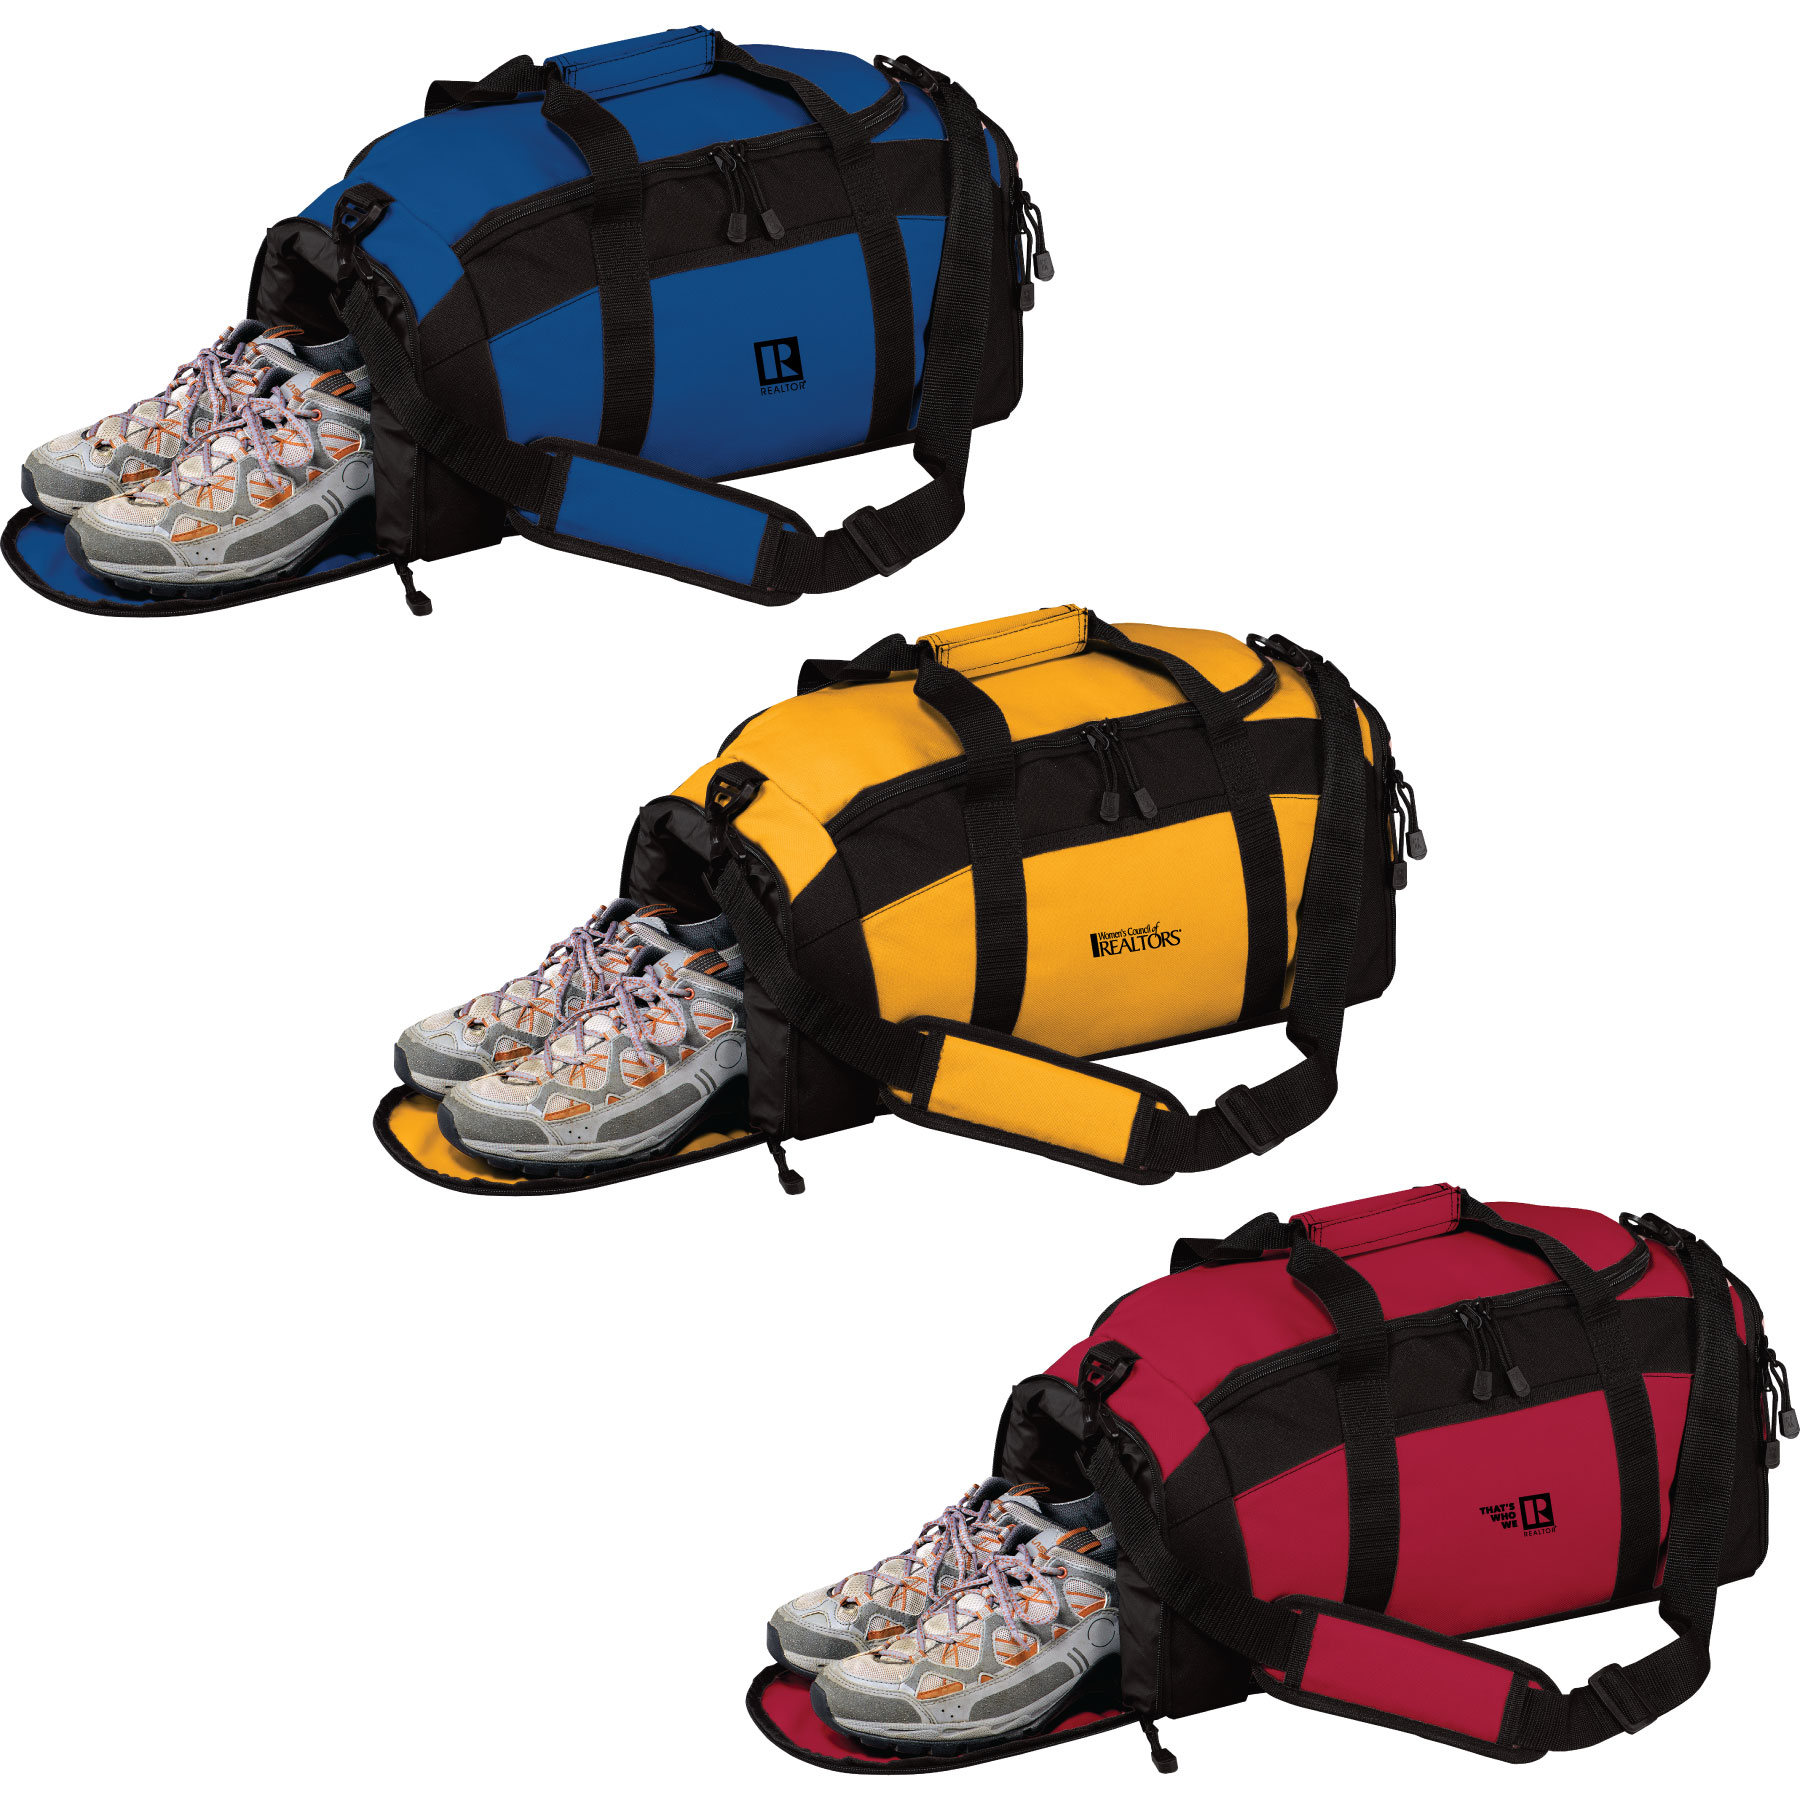 Generations Gym Bag Workout,Clothes,Socks,Shoes,Duffle,Duffel,Duff